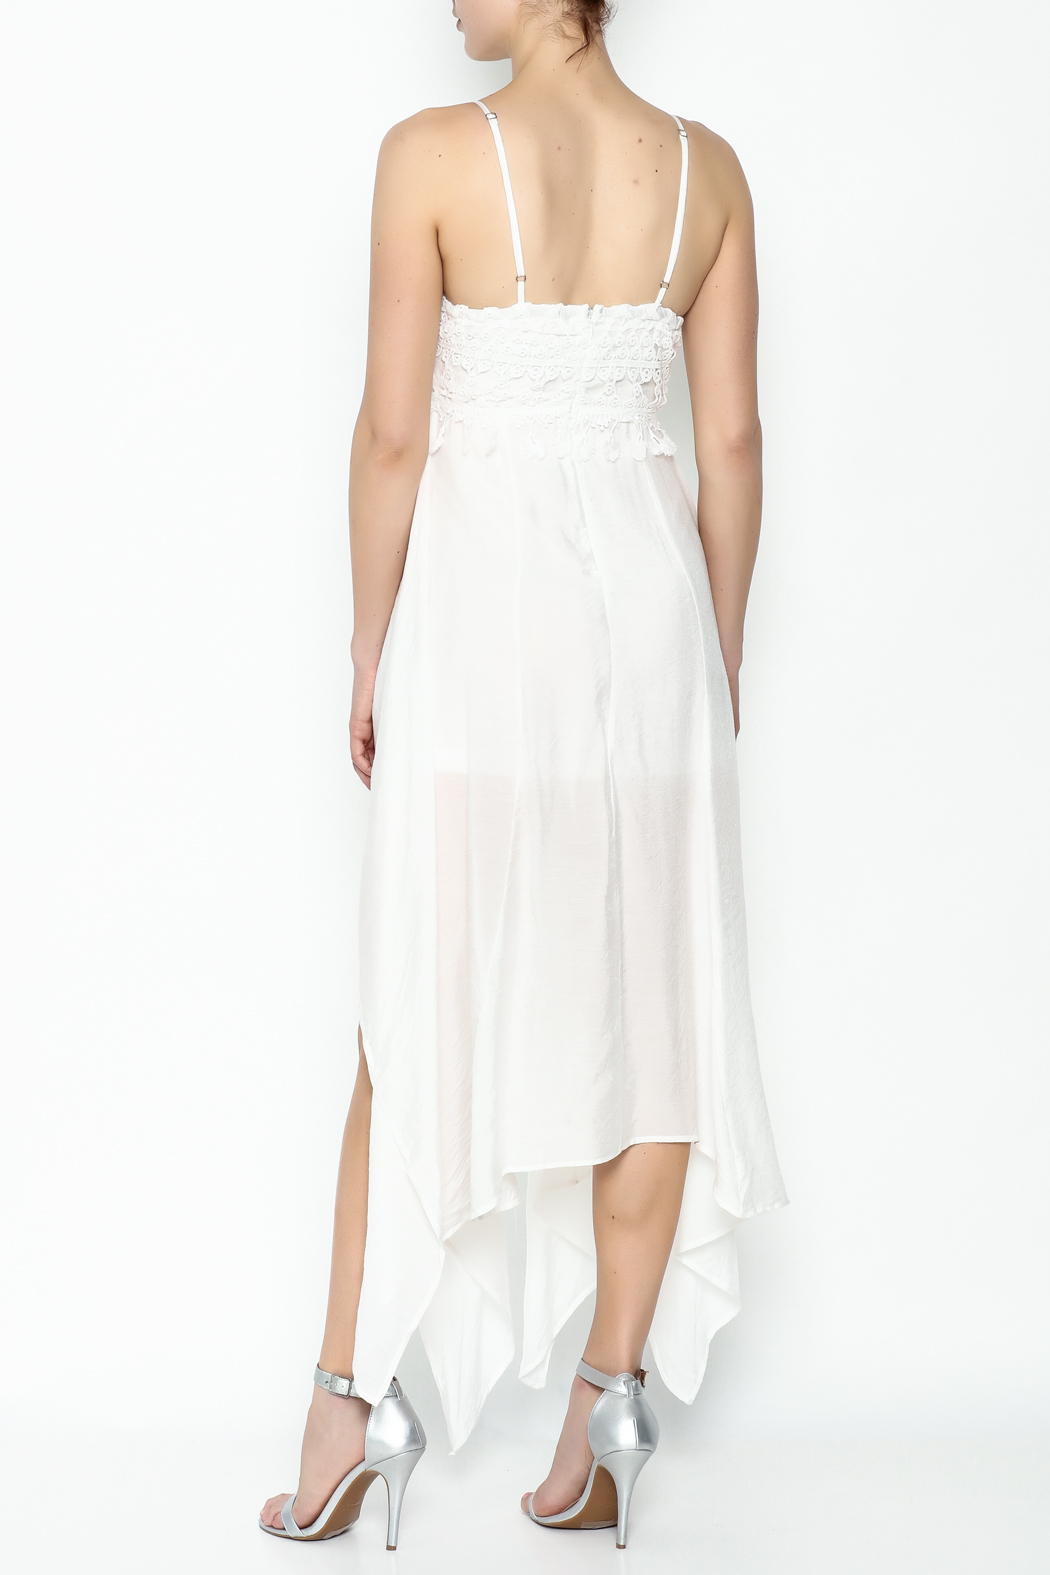 luxxel White Maxi Dress - Back Cropped Image